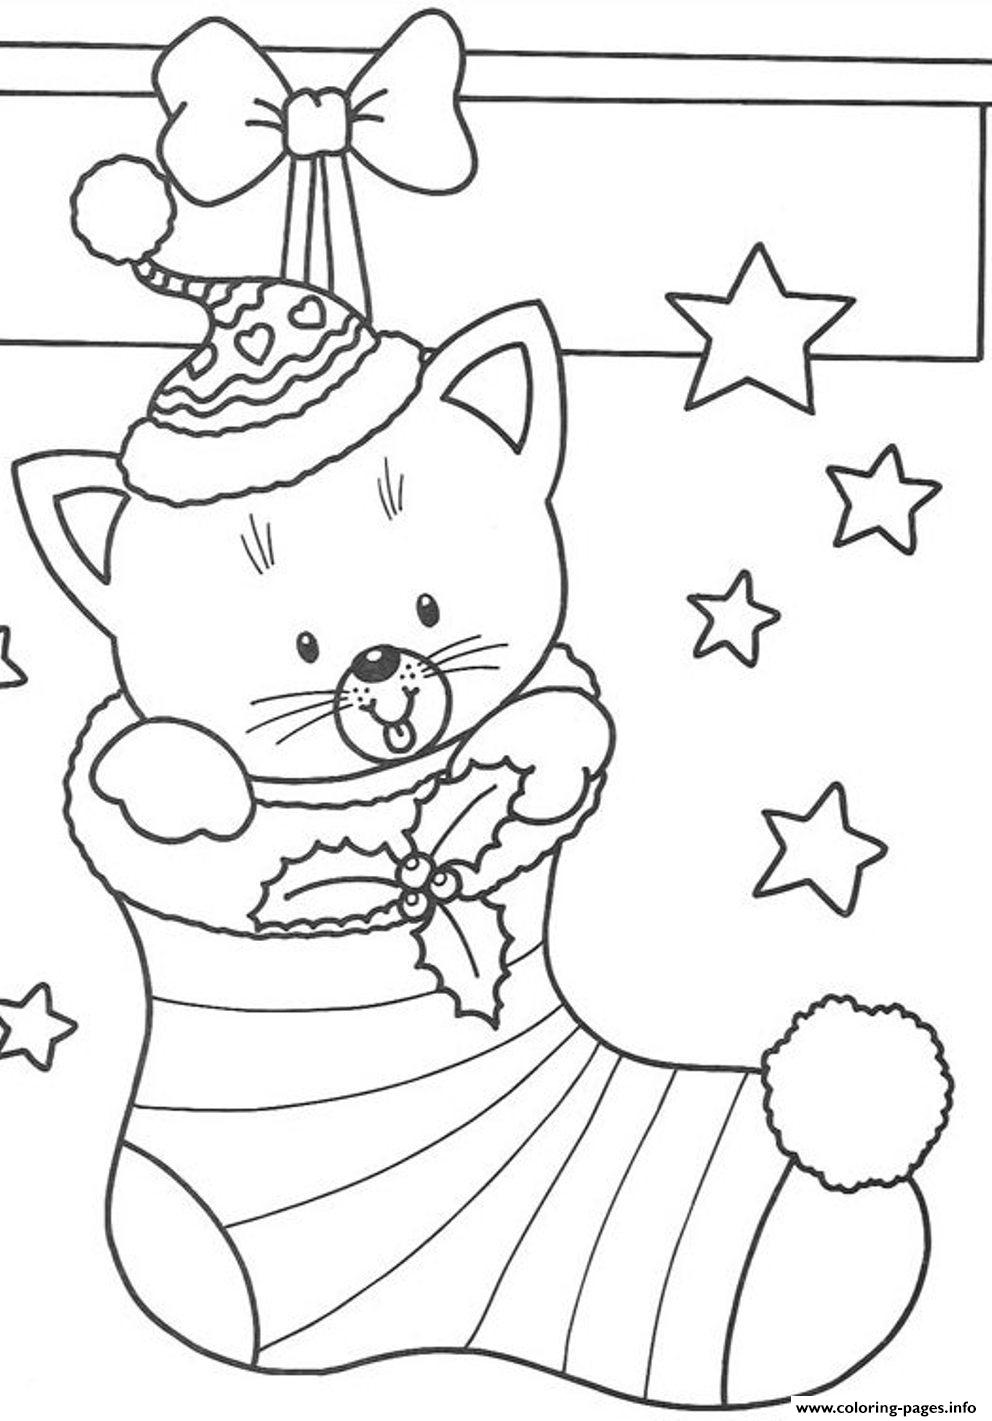 Free S Christmas Cat In Stocking8a58 Coloring Pages Printable